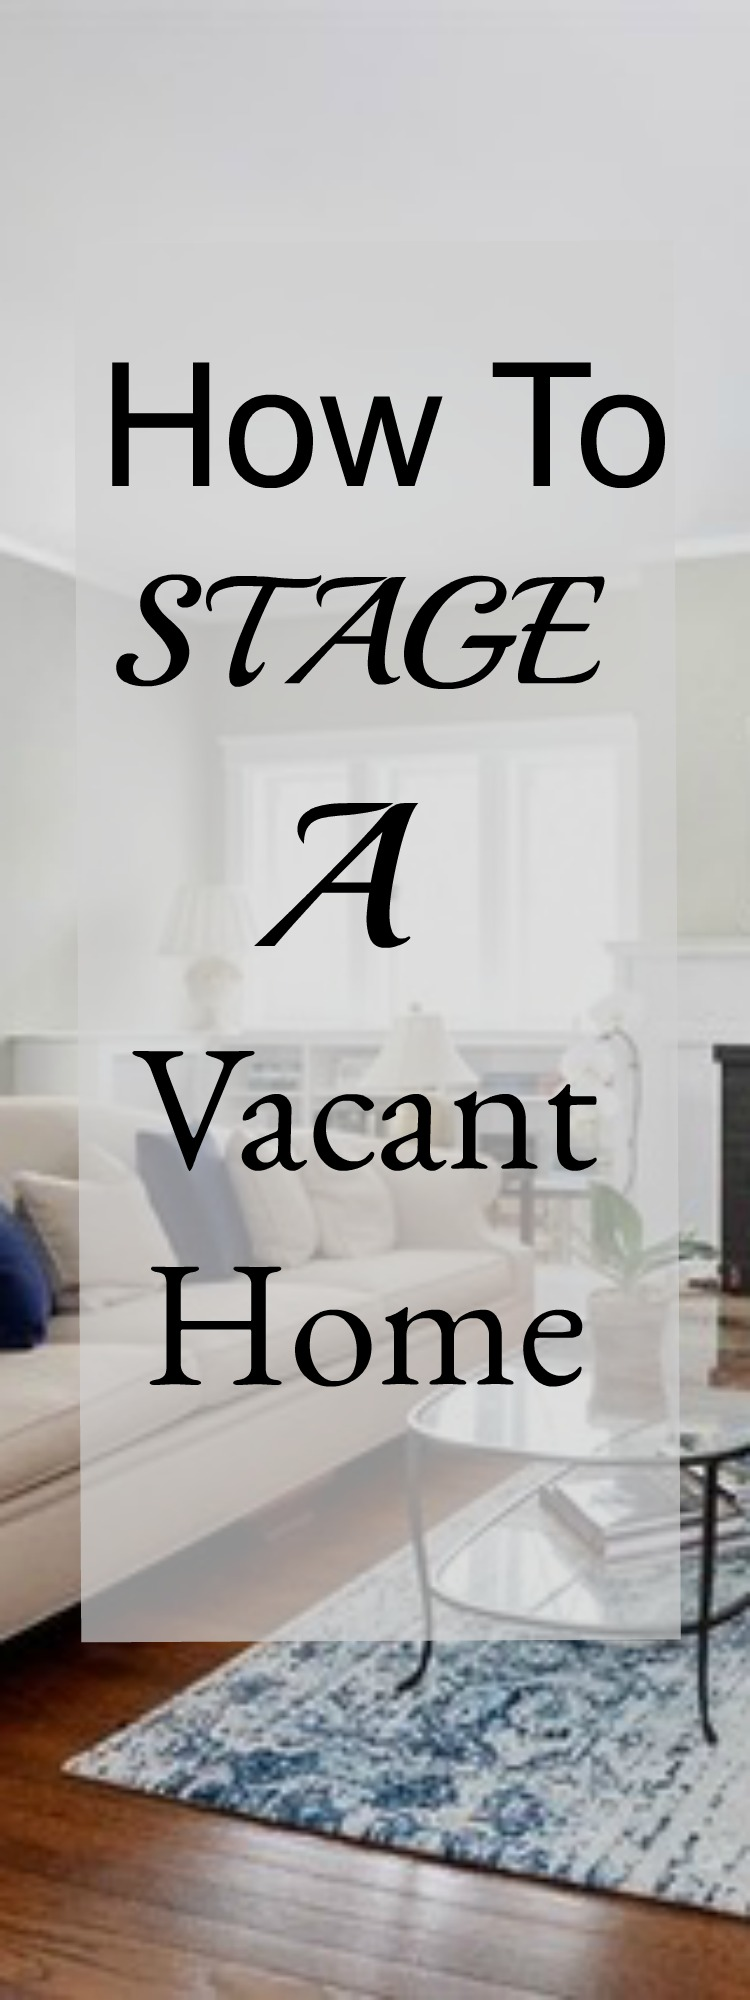 Vacant Home Staging Tips How To Stage A Vacant Home